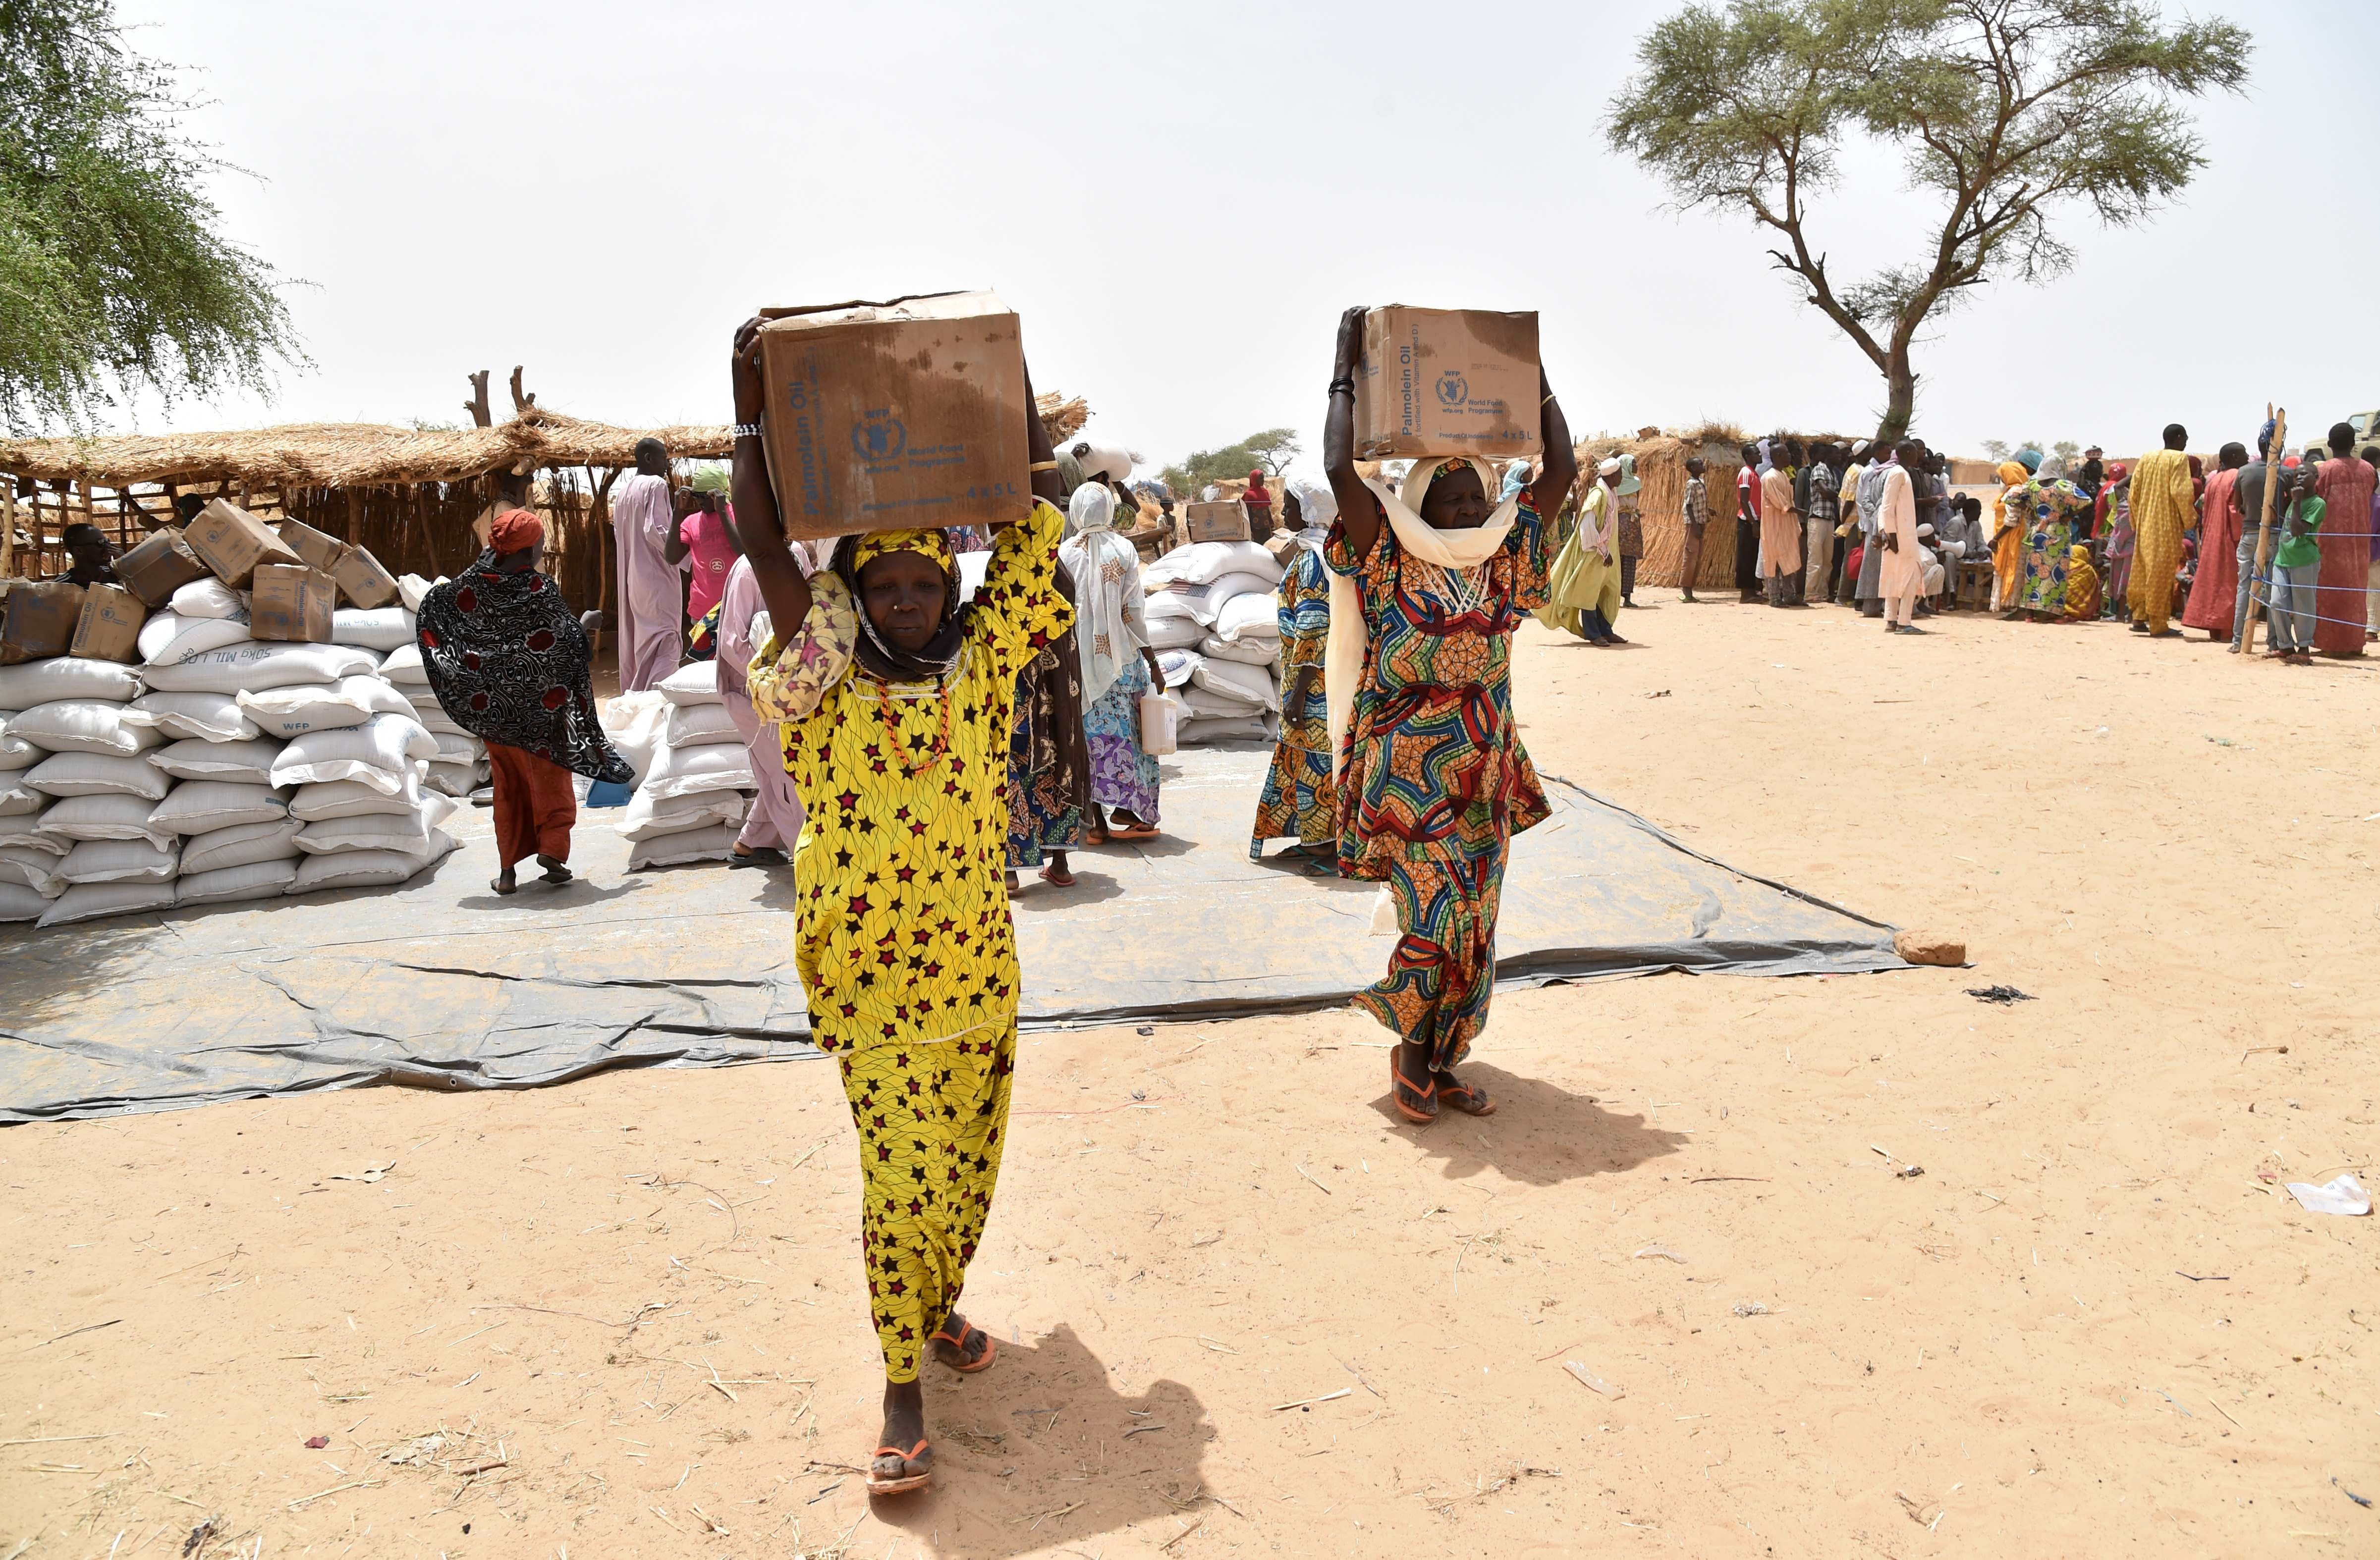 Displaced people fleeing from Boko Haram incursions into Niger carry boxes of oil during a World Food Programme (WFP) and USAID food distribution at the Asanga refugee camp near Diffa on June 16, 2016.